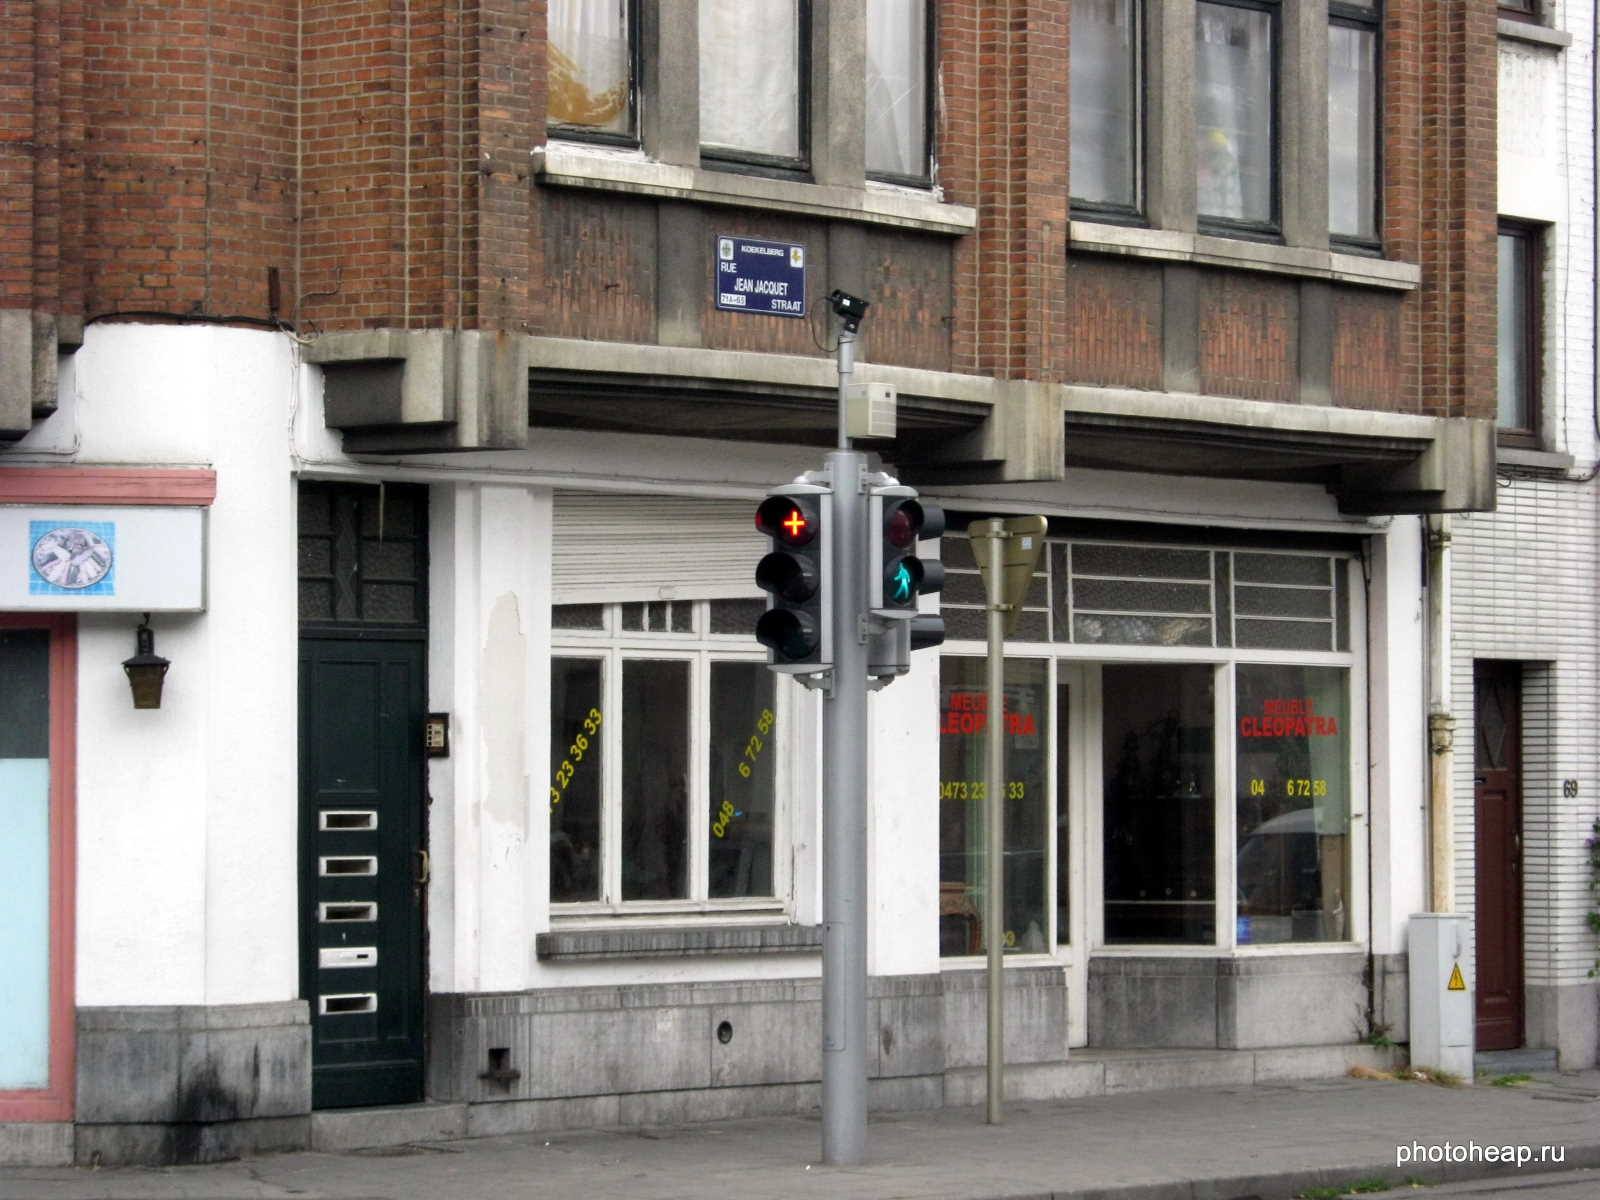 Brussels - Red cross traffic lights